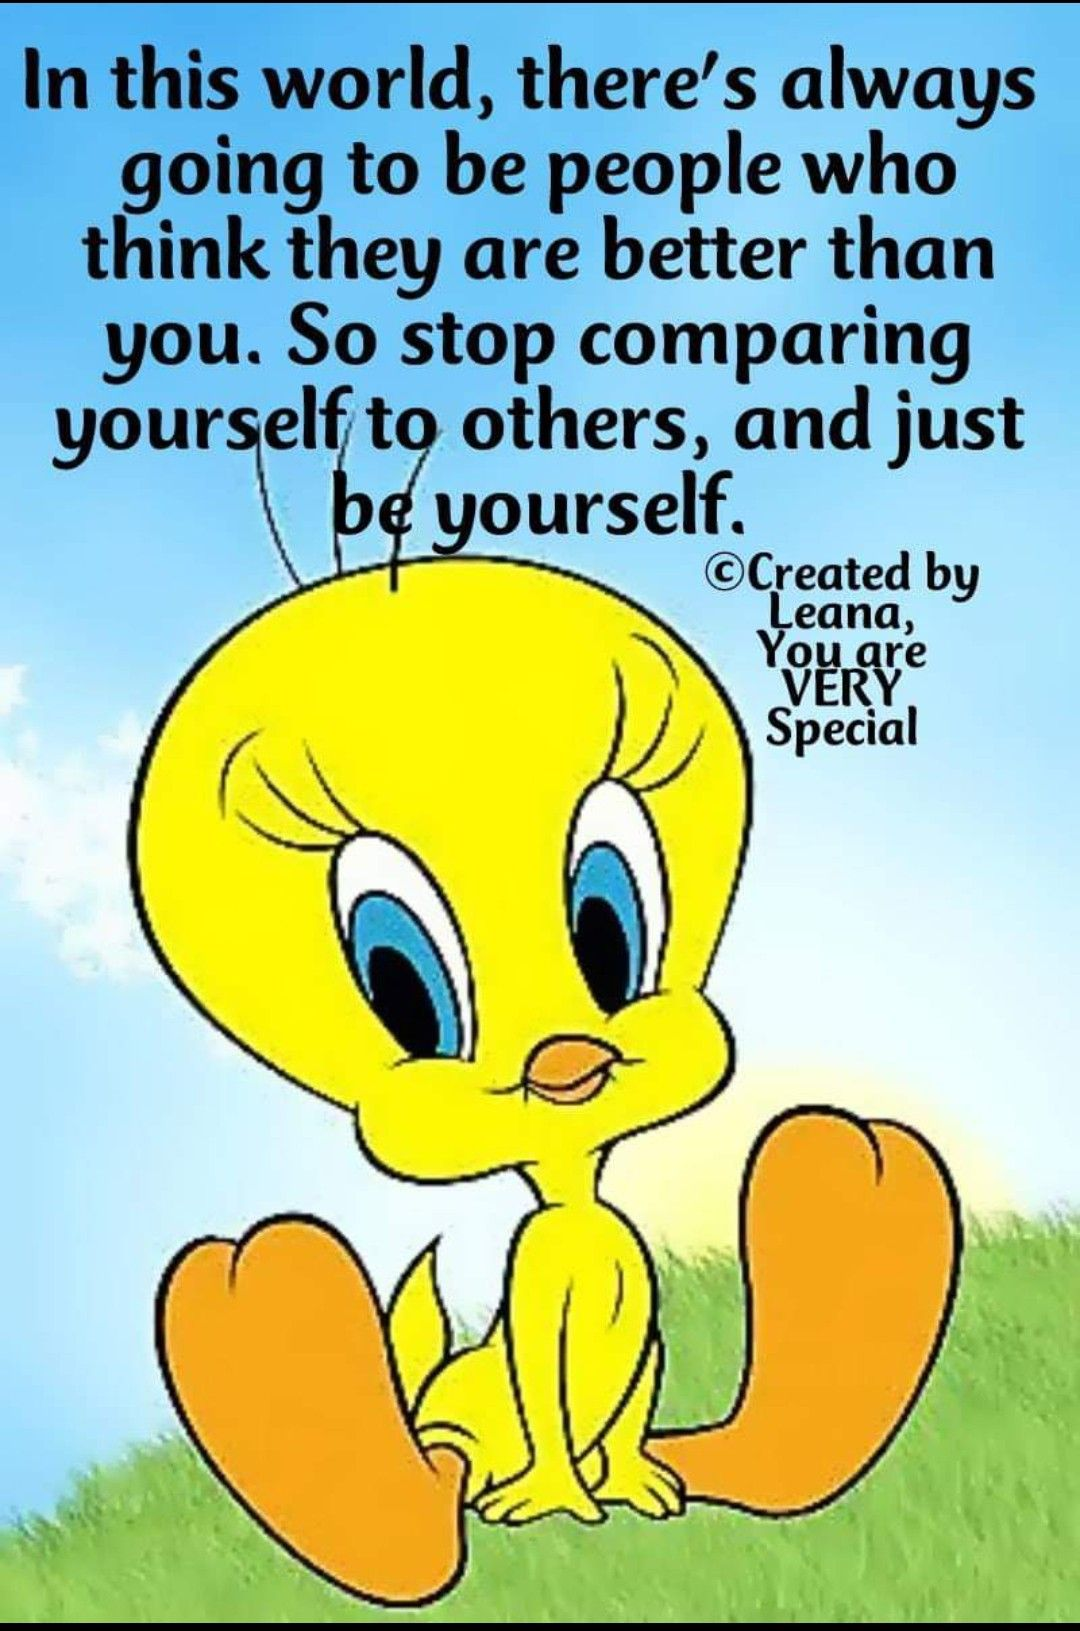 I Would Never Compare Myself To Anyone I Love Myself Too Much To Didrespect Myself Tweety Cute Friendship Quotes Tweety Bird Quotes Cute Cartoon Pictures